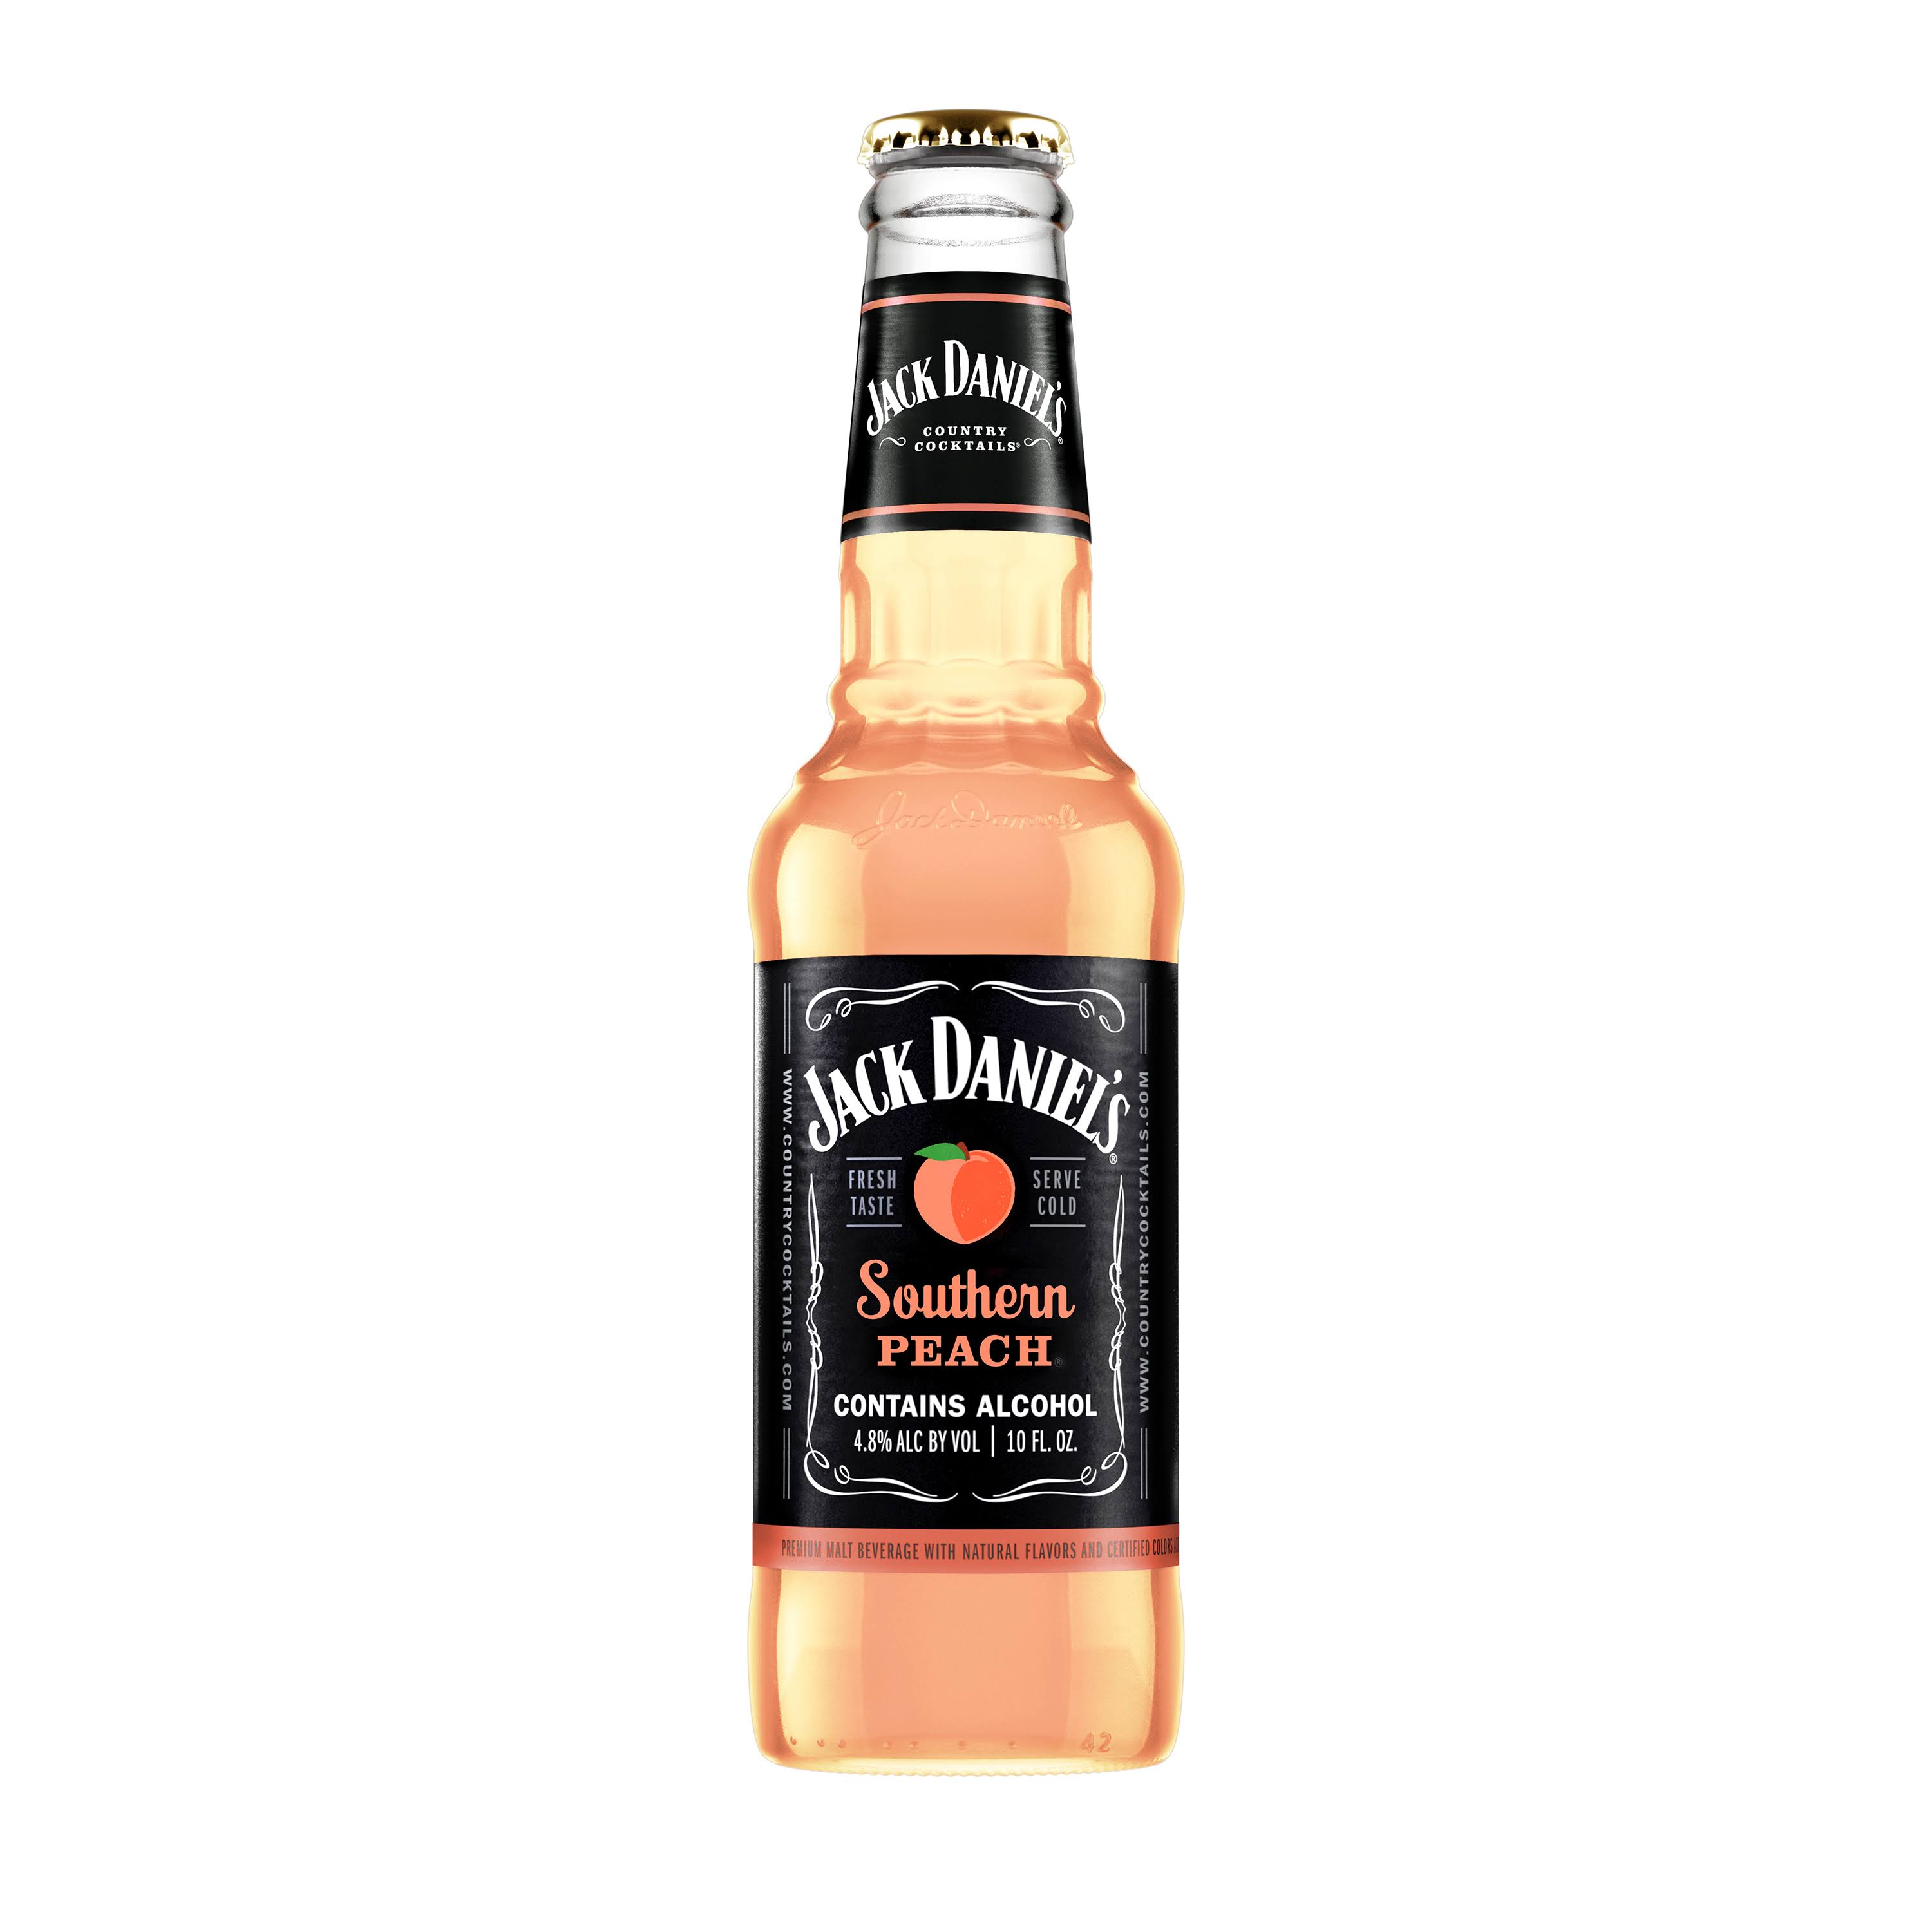 Jack Daniels Country Cocktails Southern Peach Beer, Flavored Malt Beverage - 10 oz